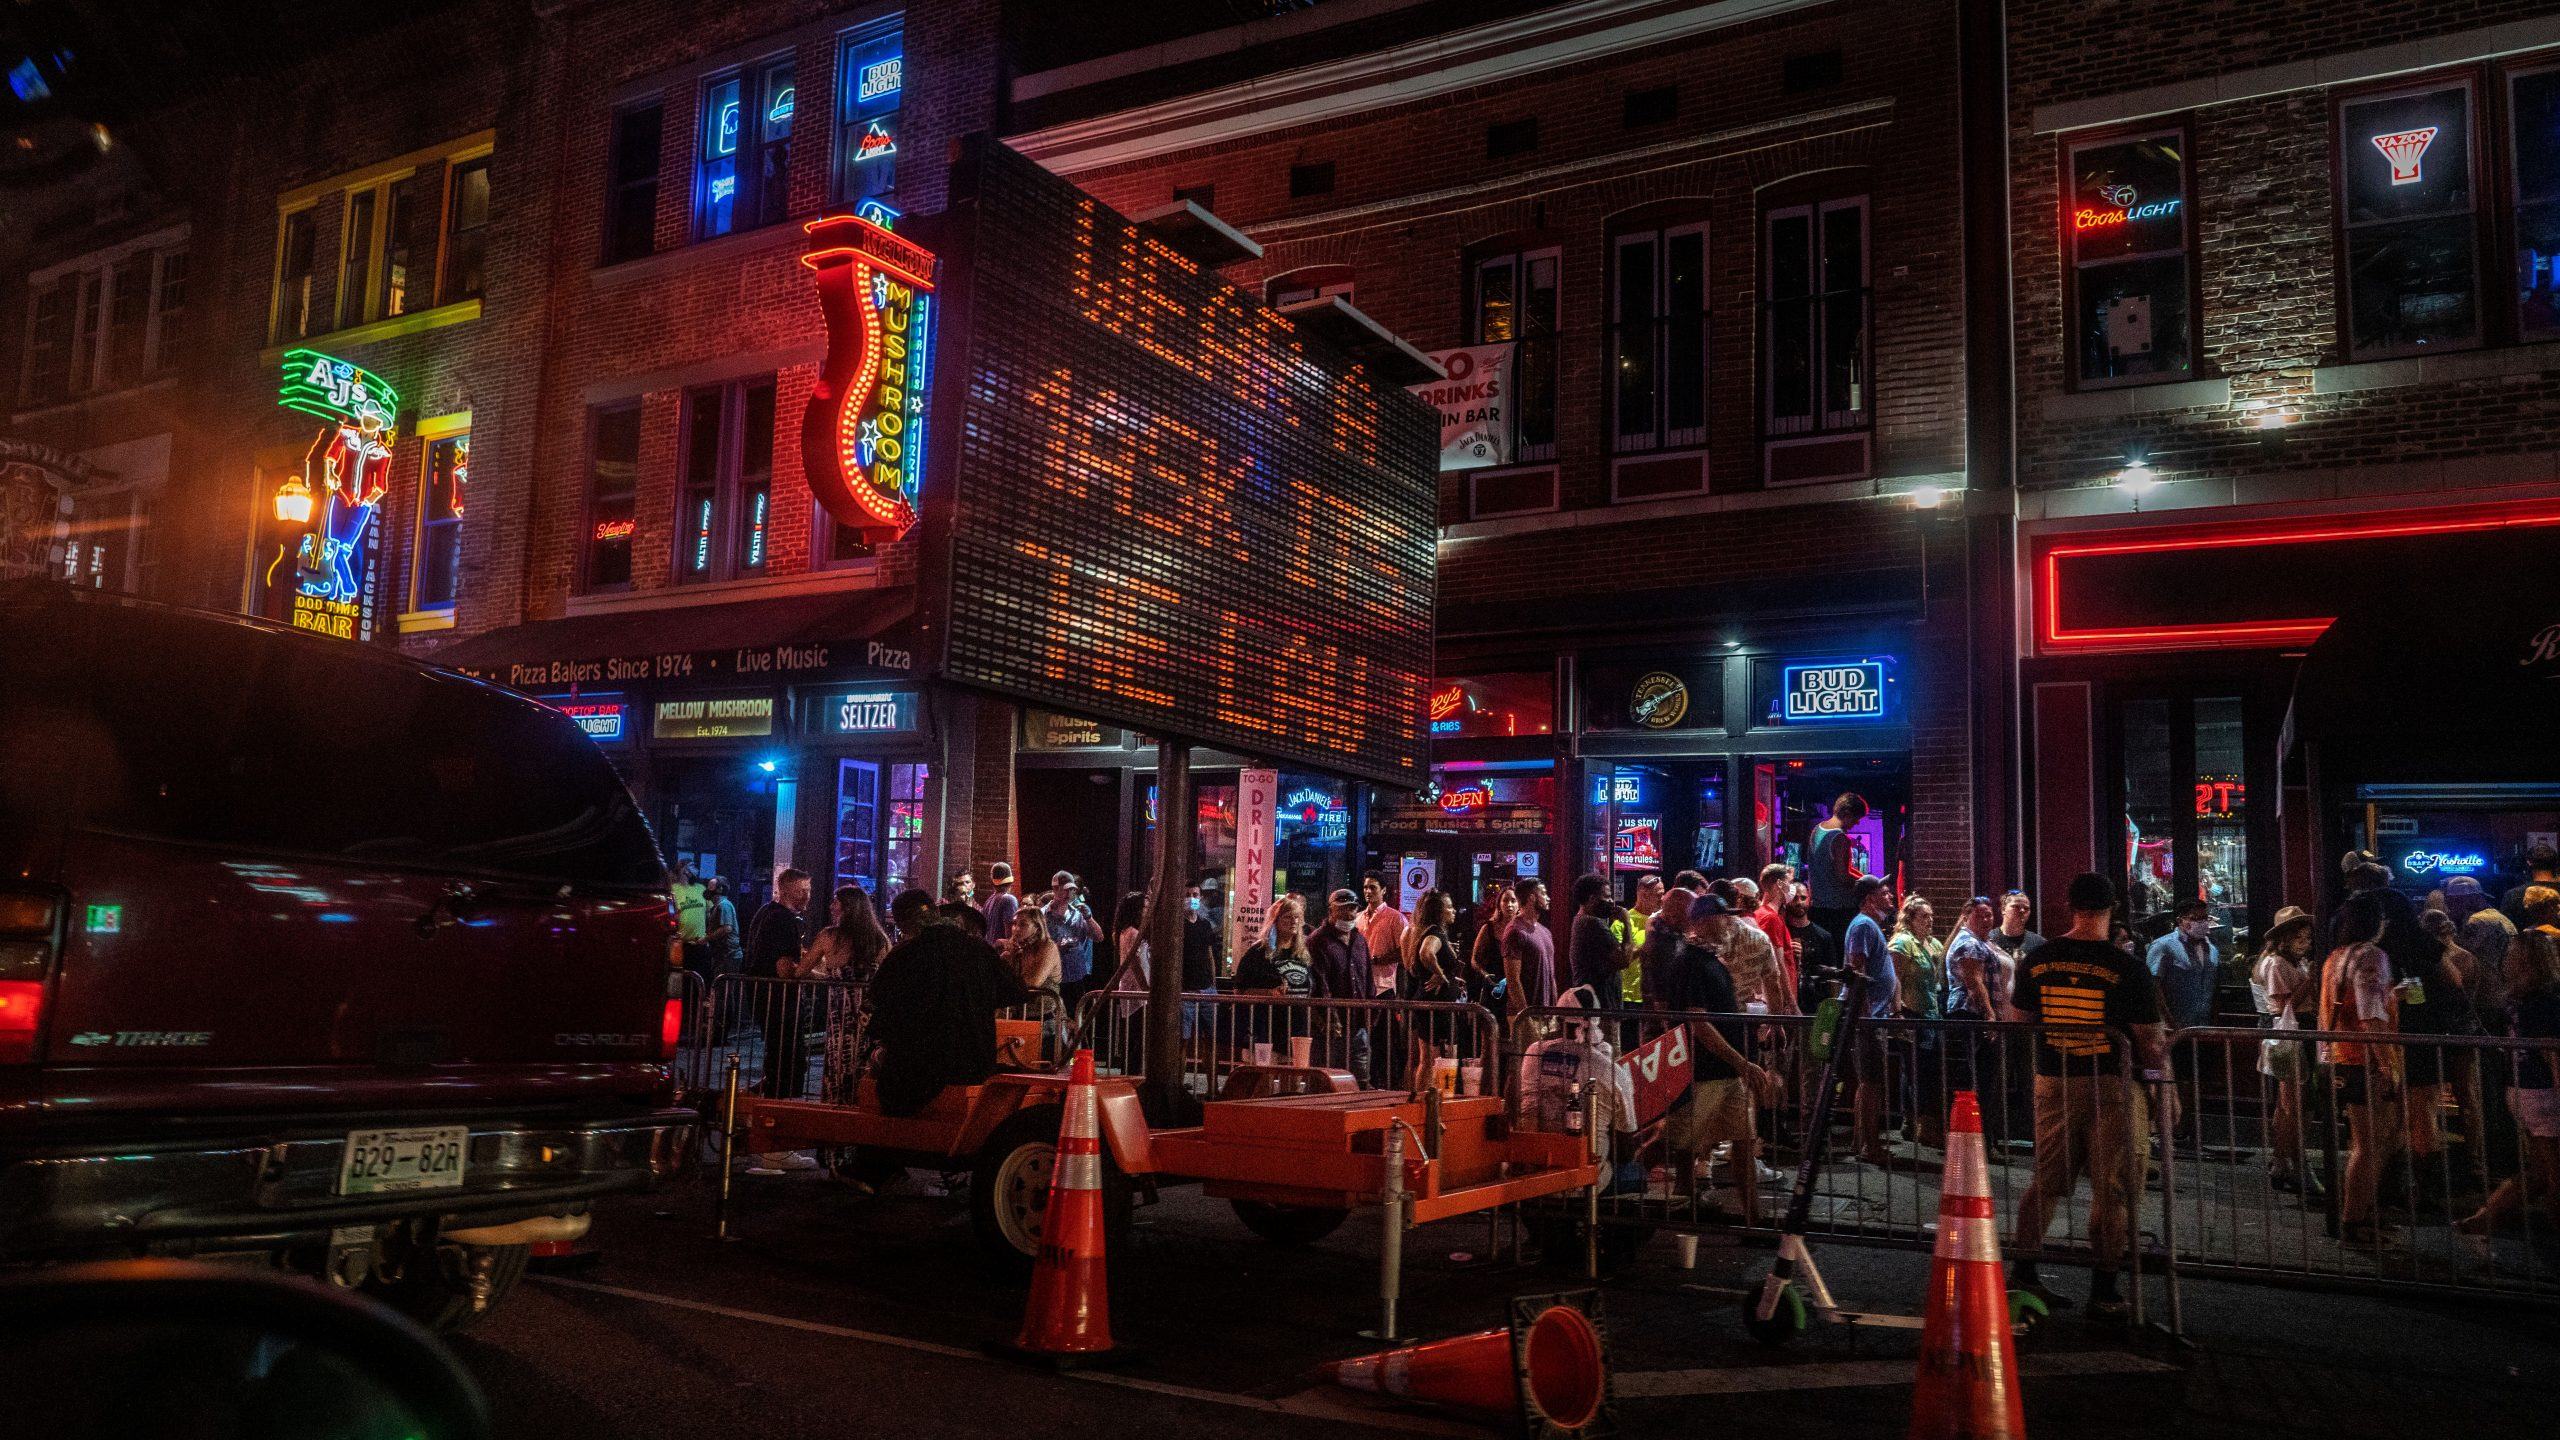 Nashville restaurants and bars account for few confirmed COVID-19 cases